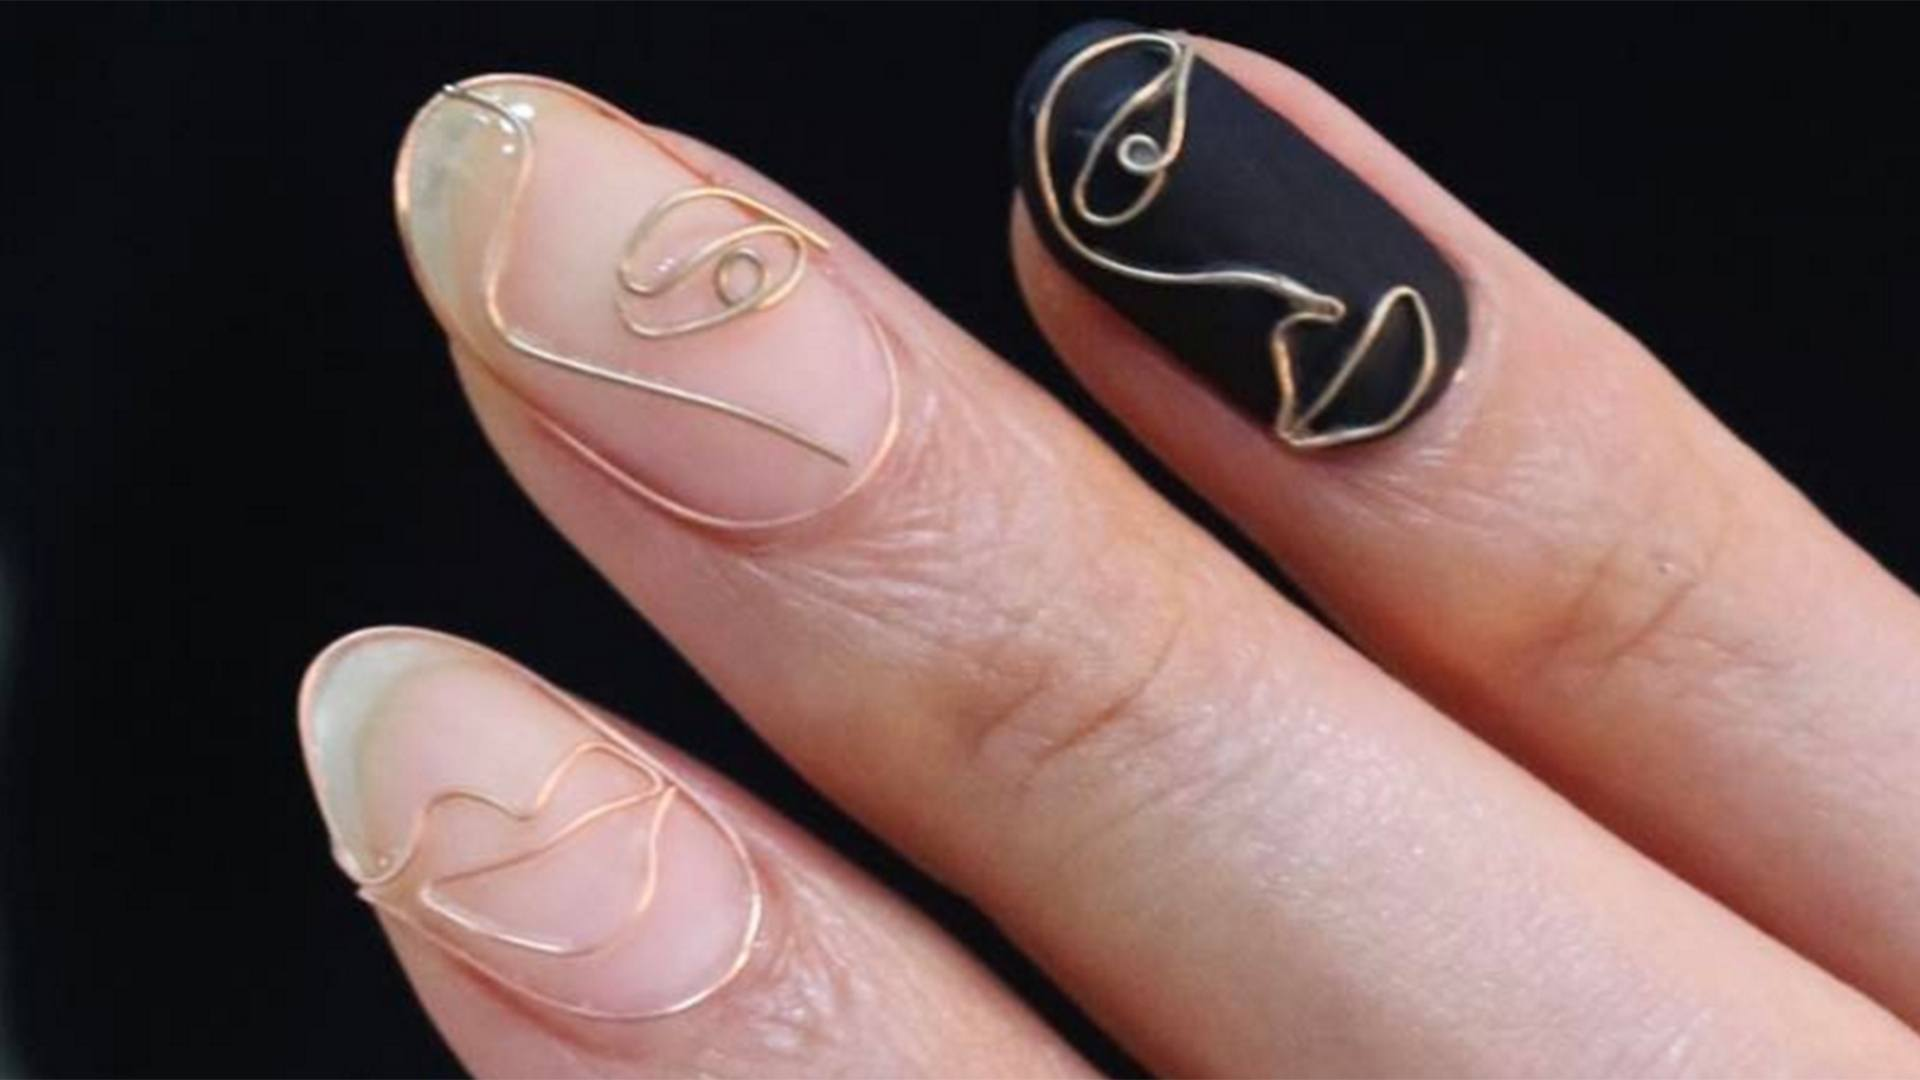 Wearing Nail Art Made of Metal is Seoul's Hottest Fashion Trend